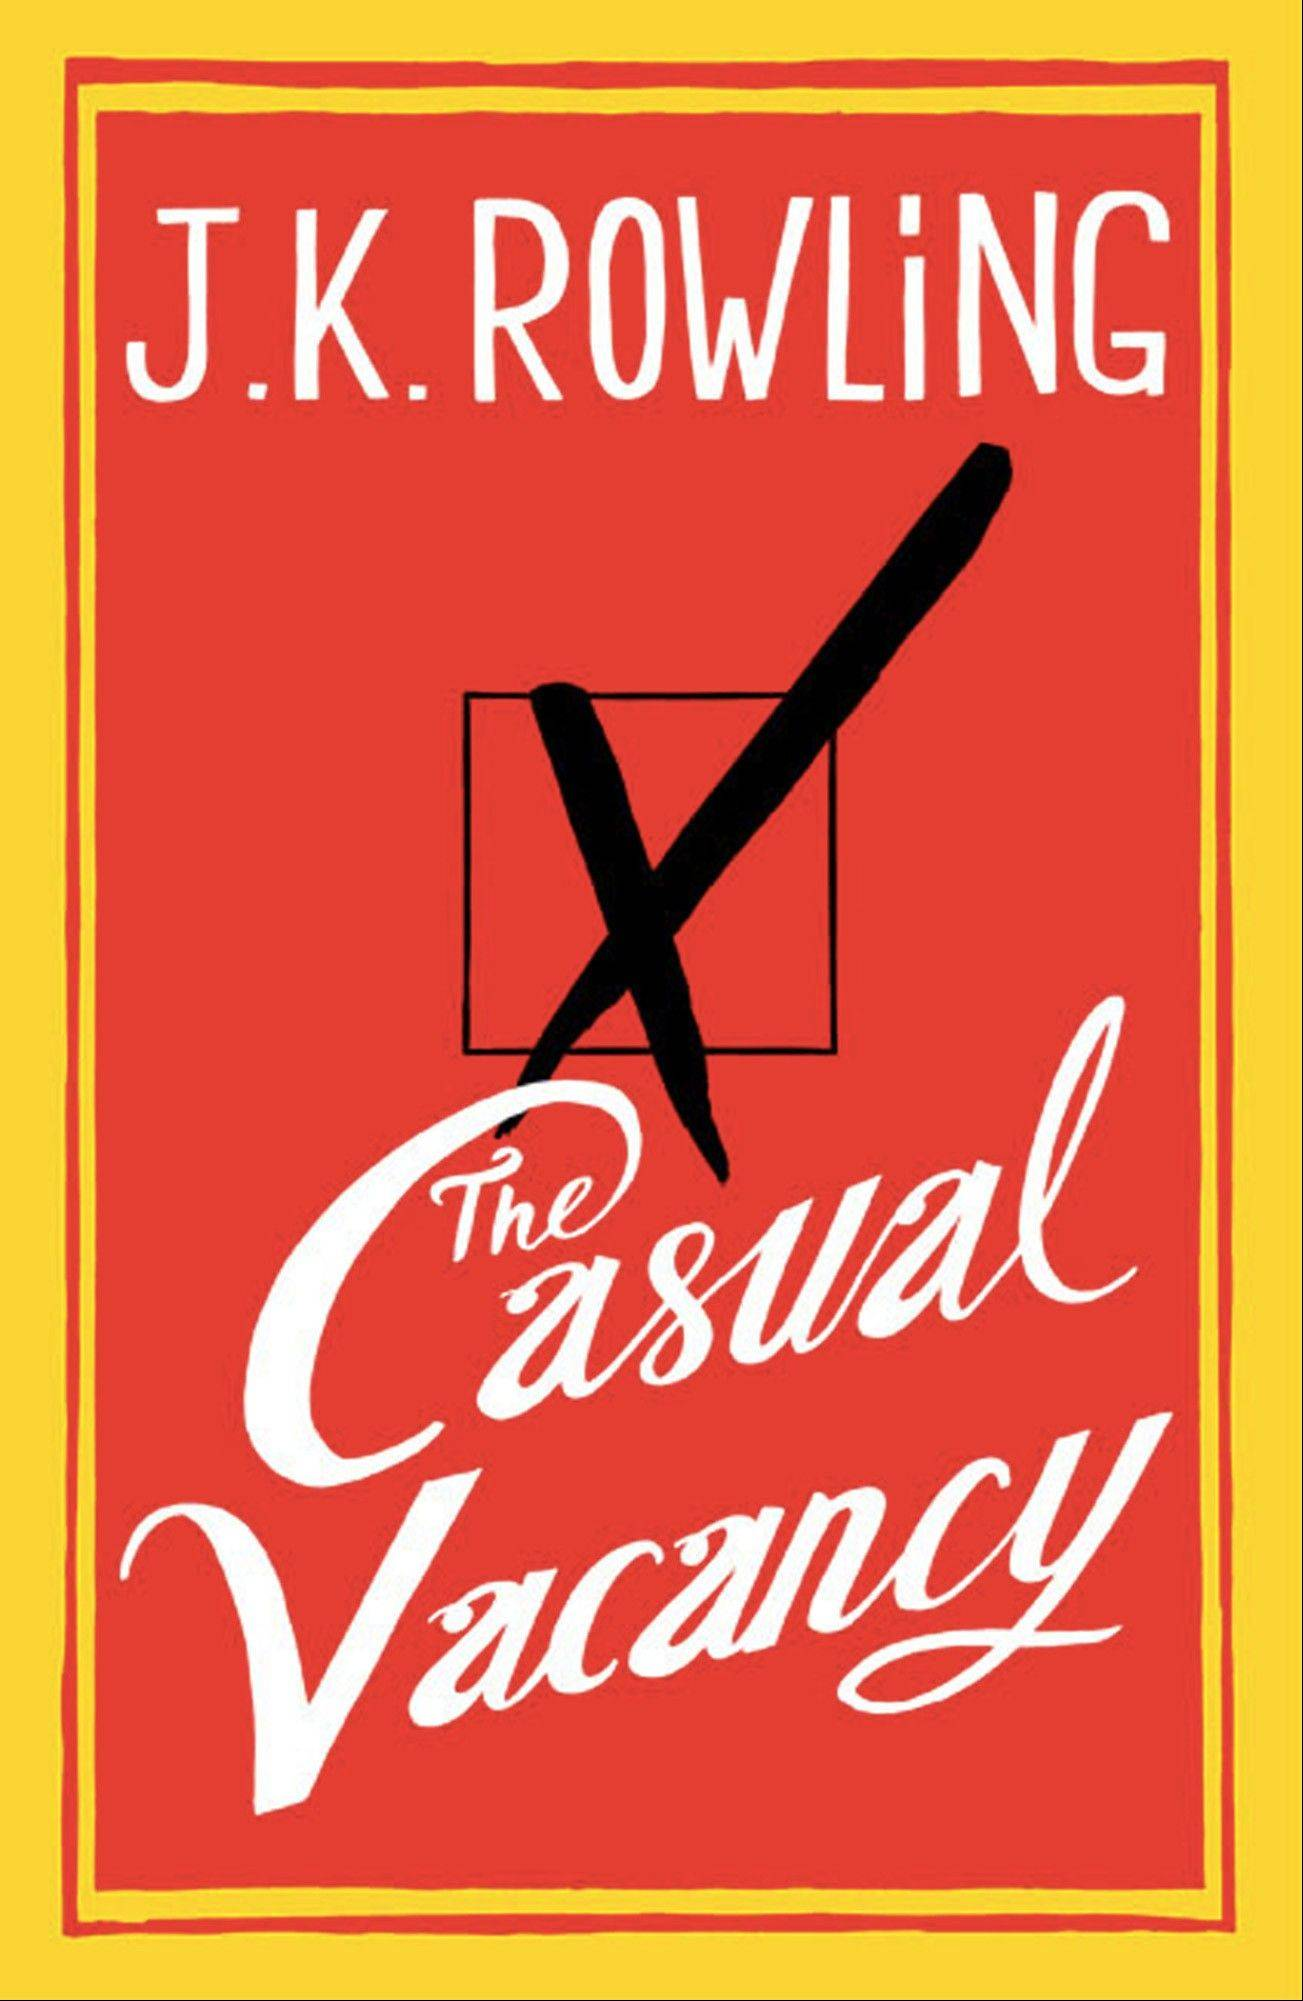 """The Casual Vacancy"" by J.K. Rowling"